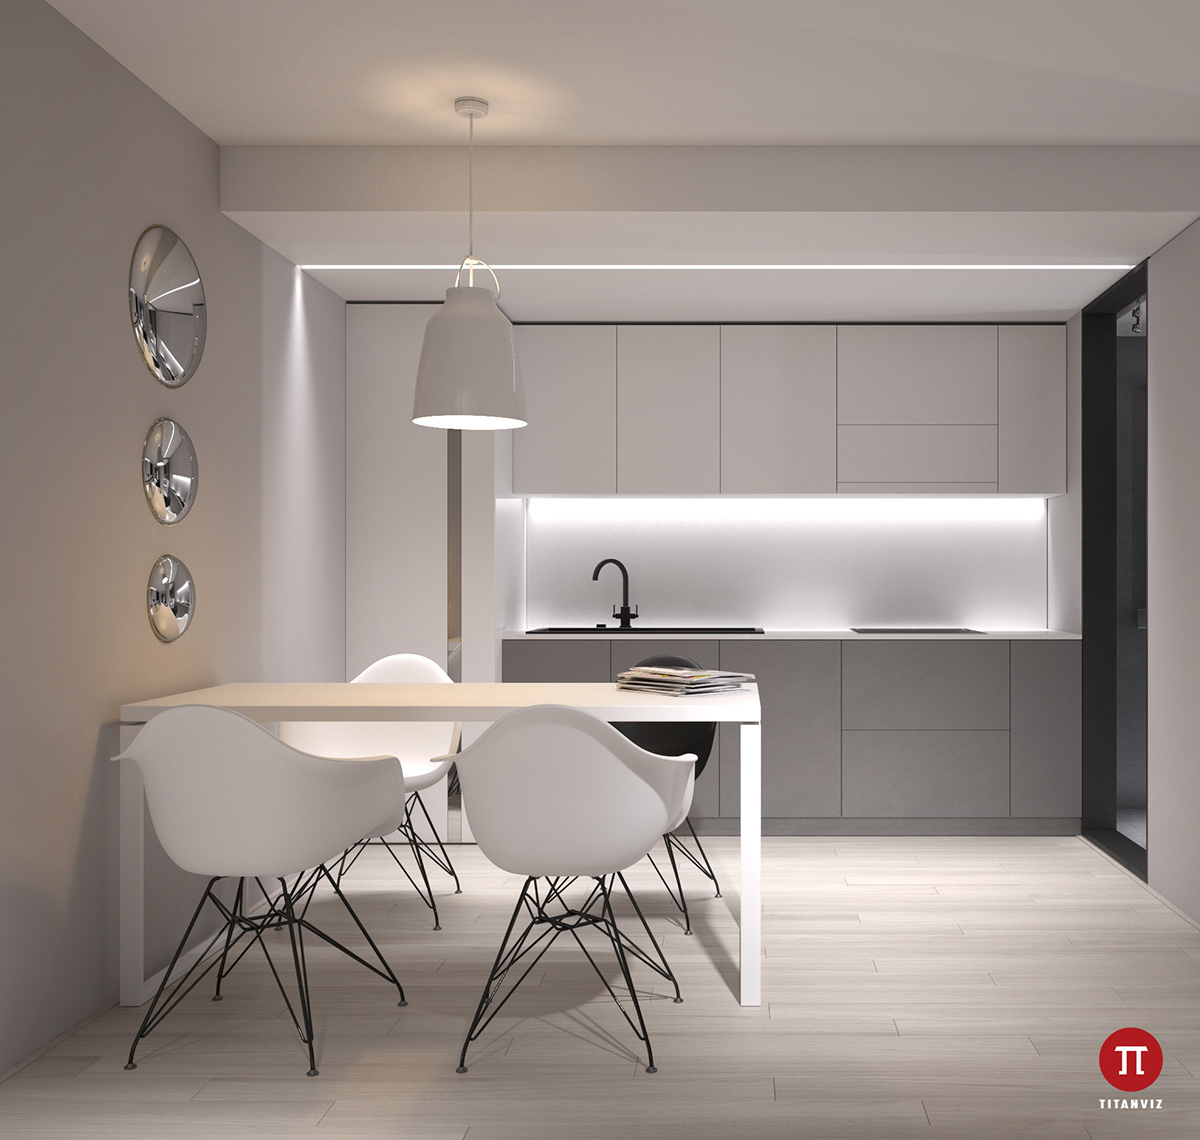 white-and-grey-kitchen-simplistic-dining-area-school-chairs